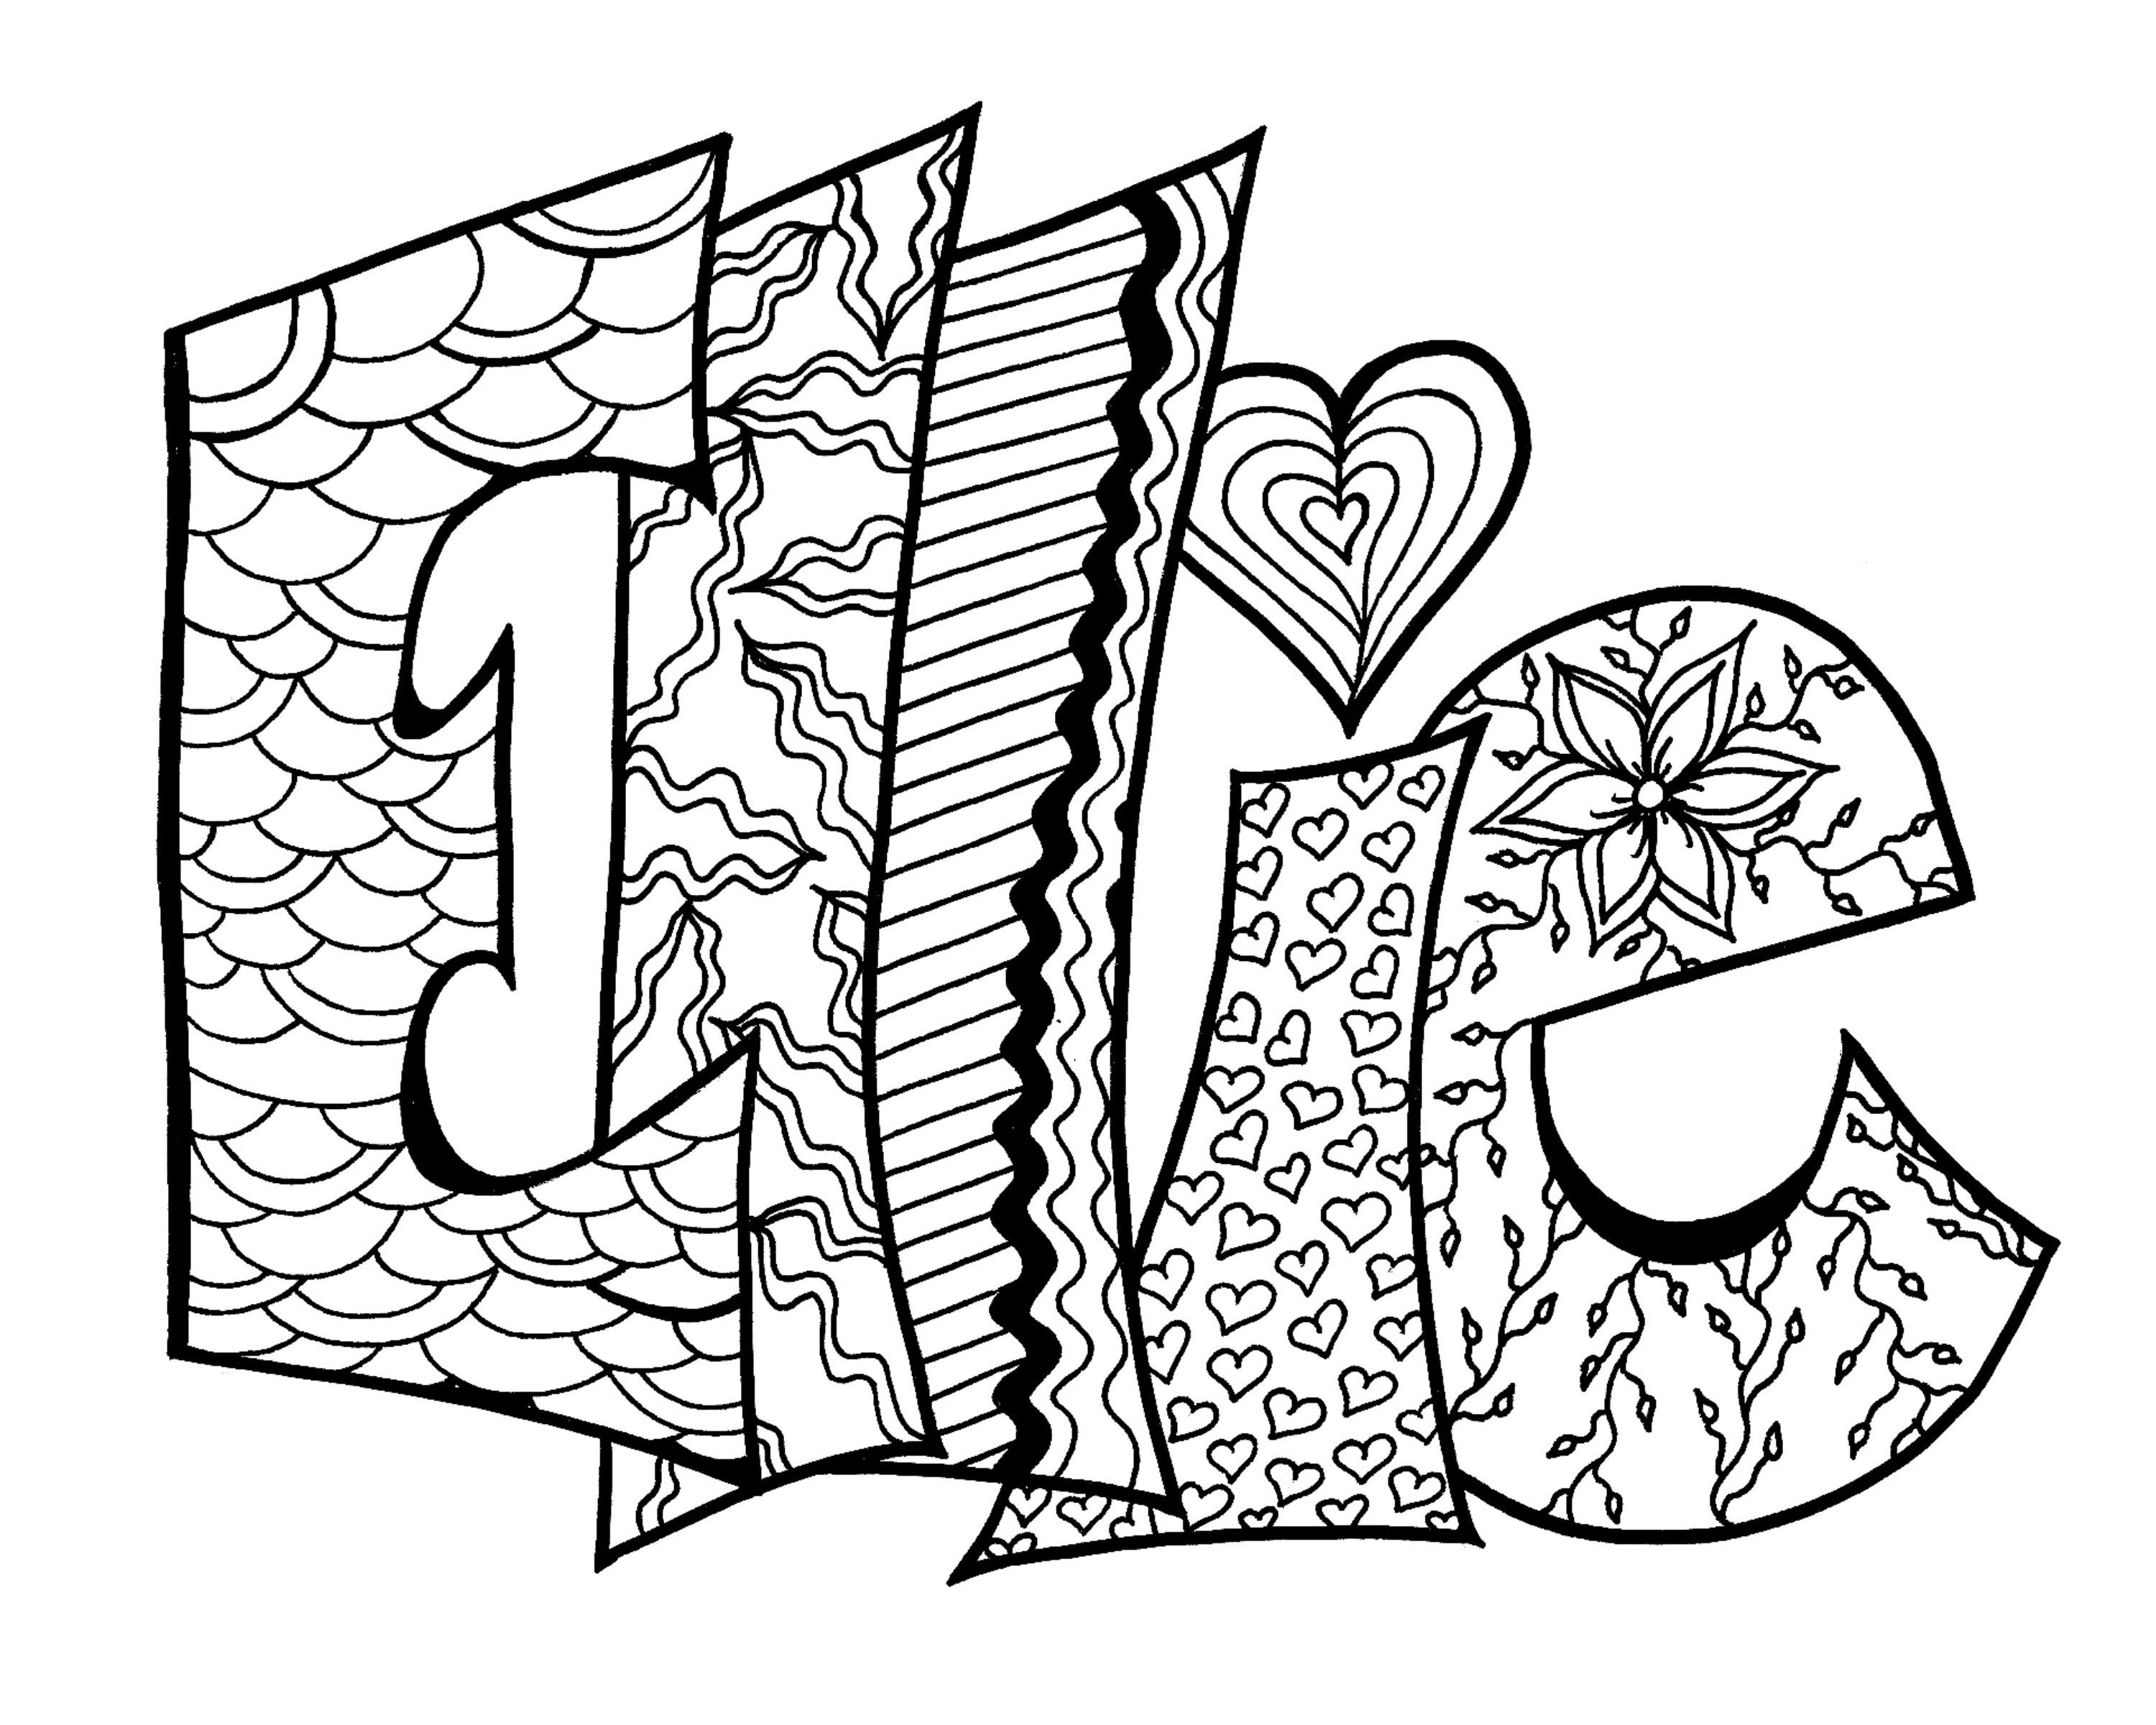 free personalized name coloring pages personalized name coloring pages at getcoloringscom name personalized coloring free pages